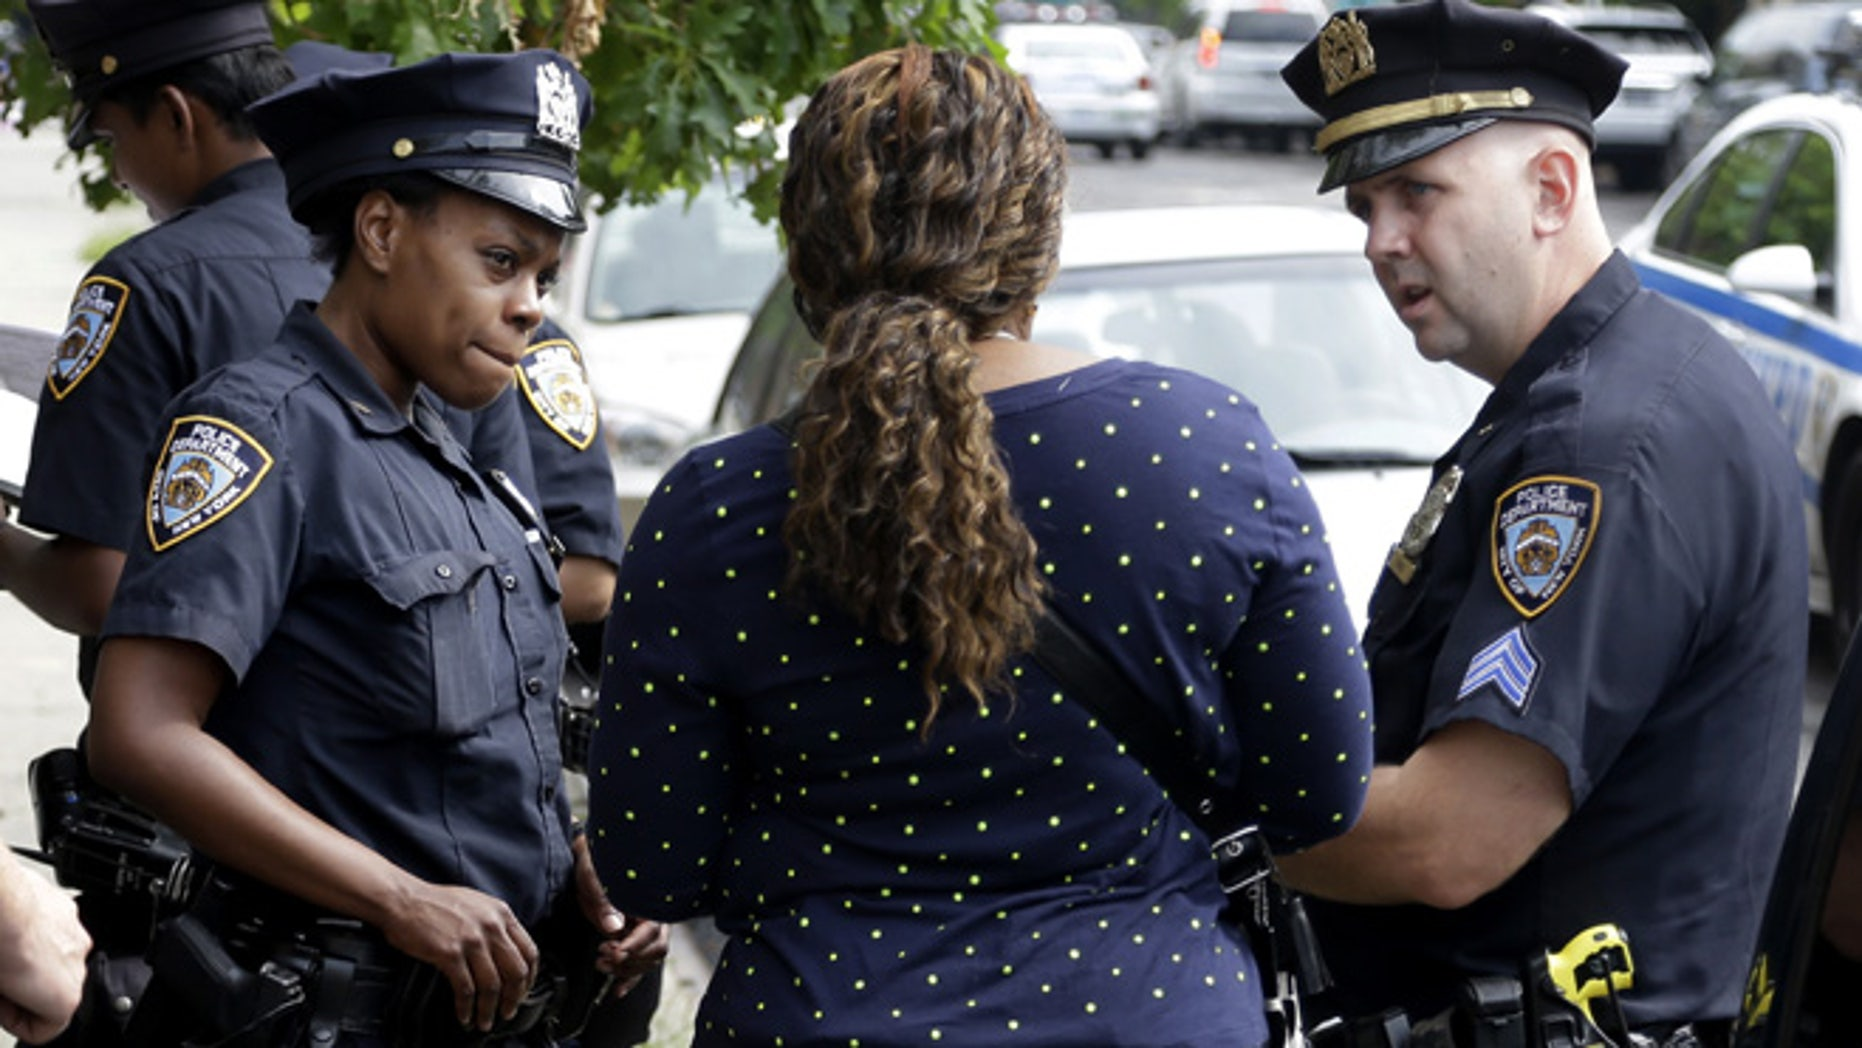 """Police officers talk with a woman who had her phone stolen in the Brownsville section of Brooklyn, New York, Tuesday, Aug. 13, 2013. A federal judge's stinging rebuke of the police department's stop-and-frisk policy as discriminatory could usher in a return to the days of high violent crime rates and end New York's tenure as """"America's safest big city,"""" Mayor Michael Bloomberg warned. (AP Photo/Seth Wenig)"""